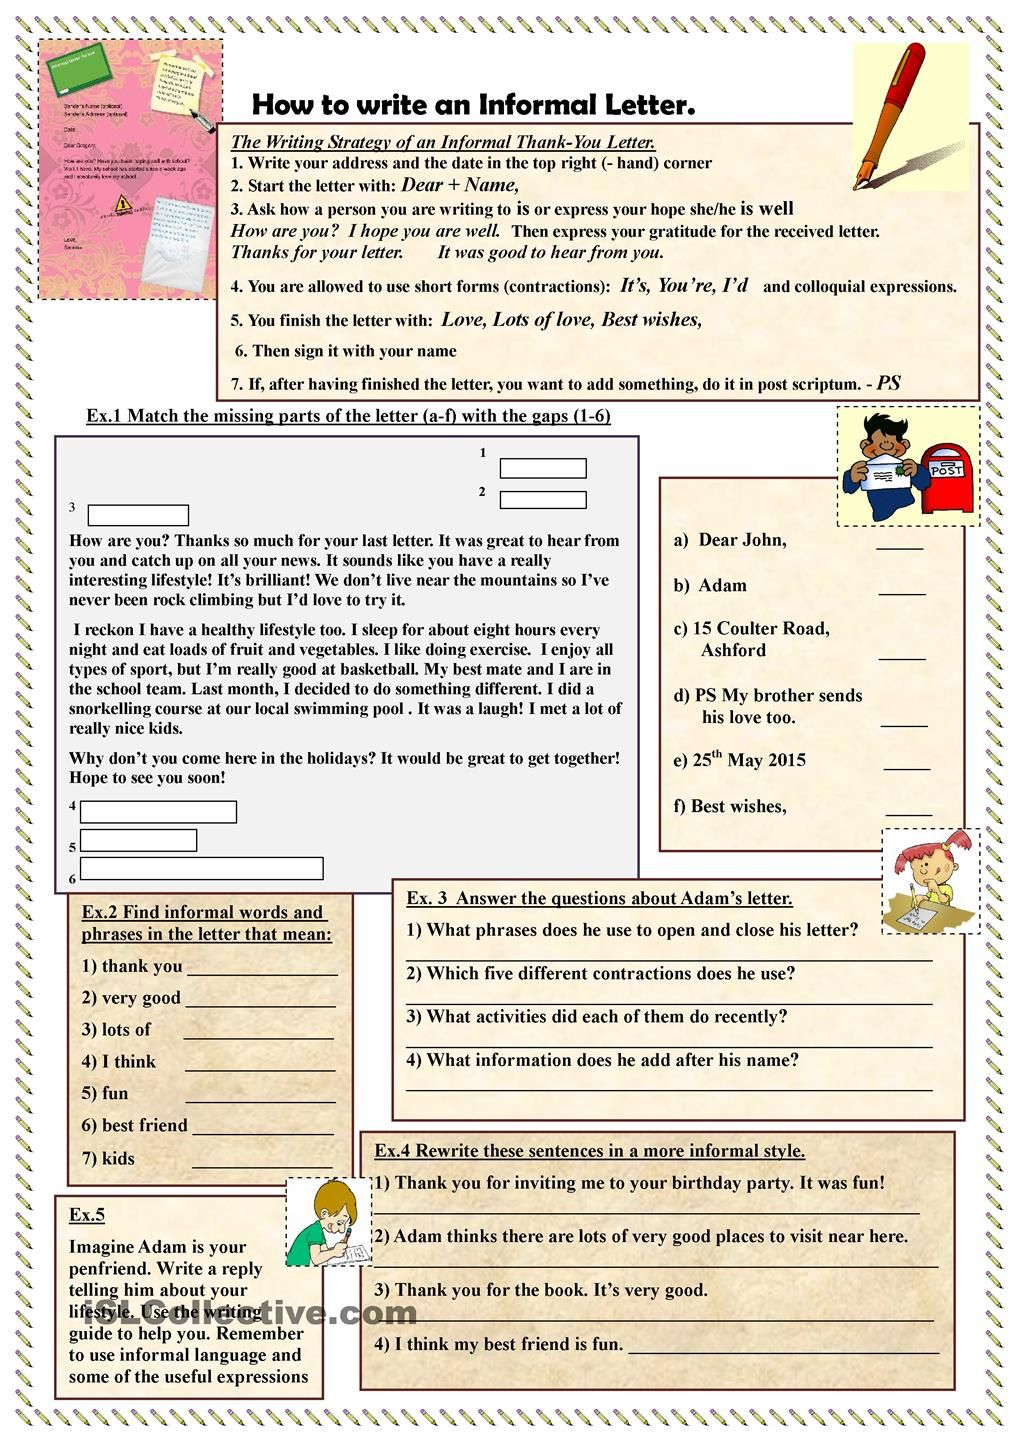 How to write an Informal Letter ESL worksheets of the